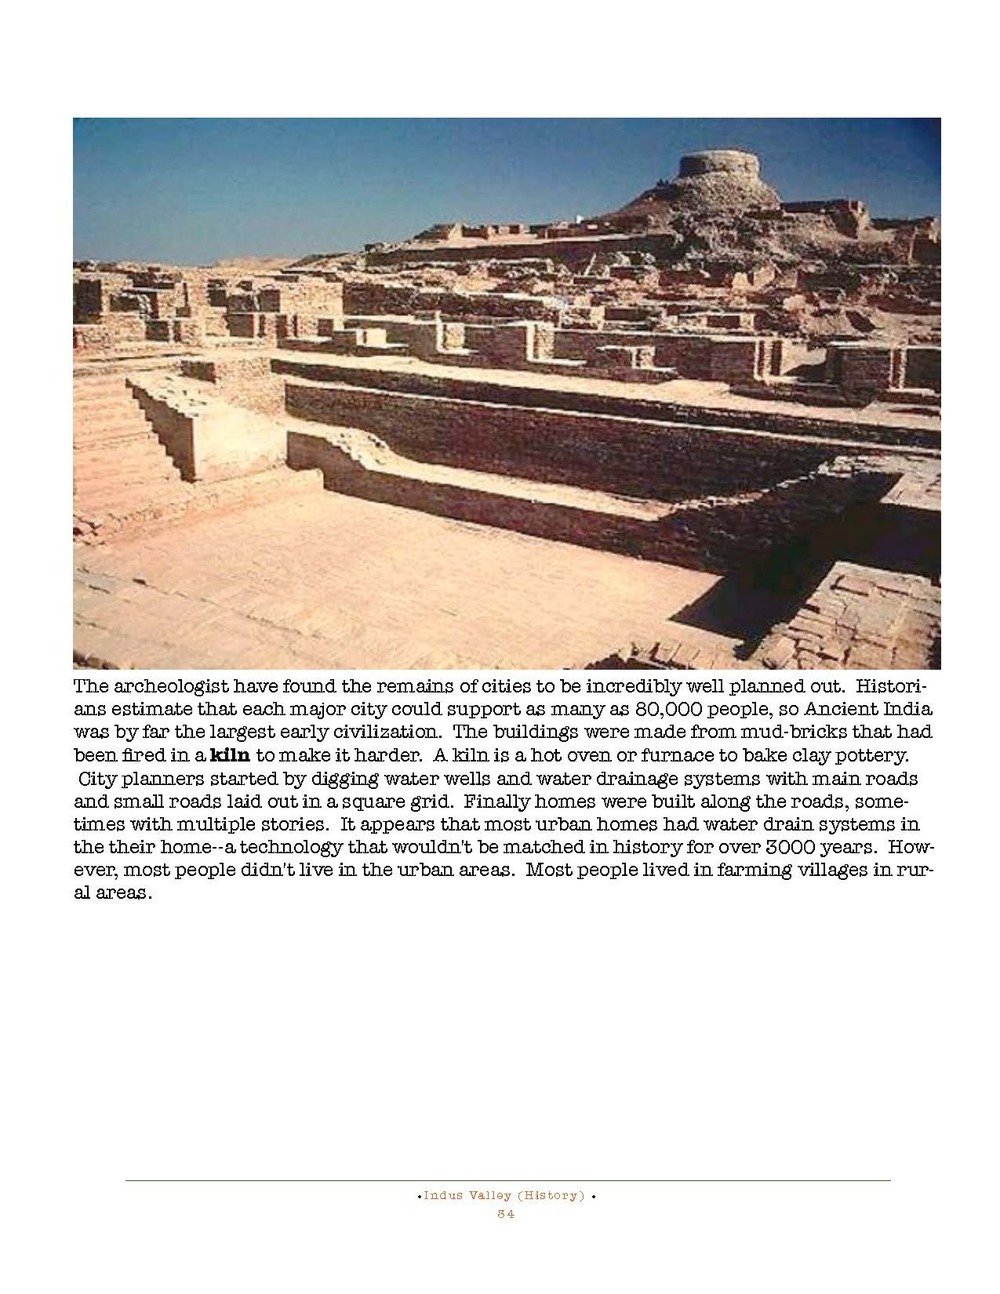 HOCE- Ancient India Notes_Page_034.jpg